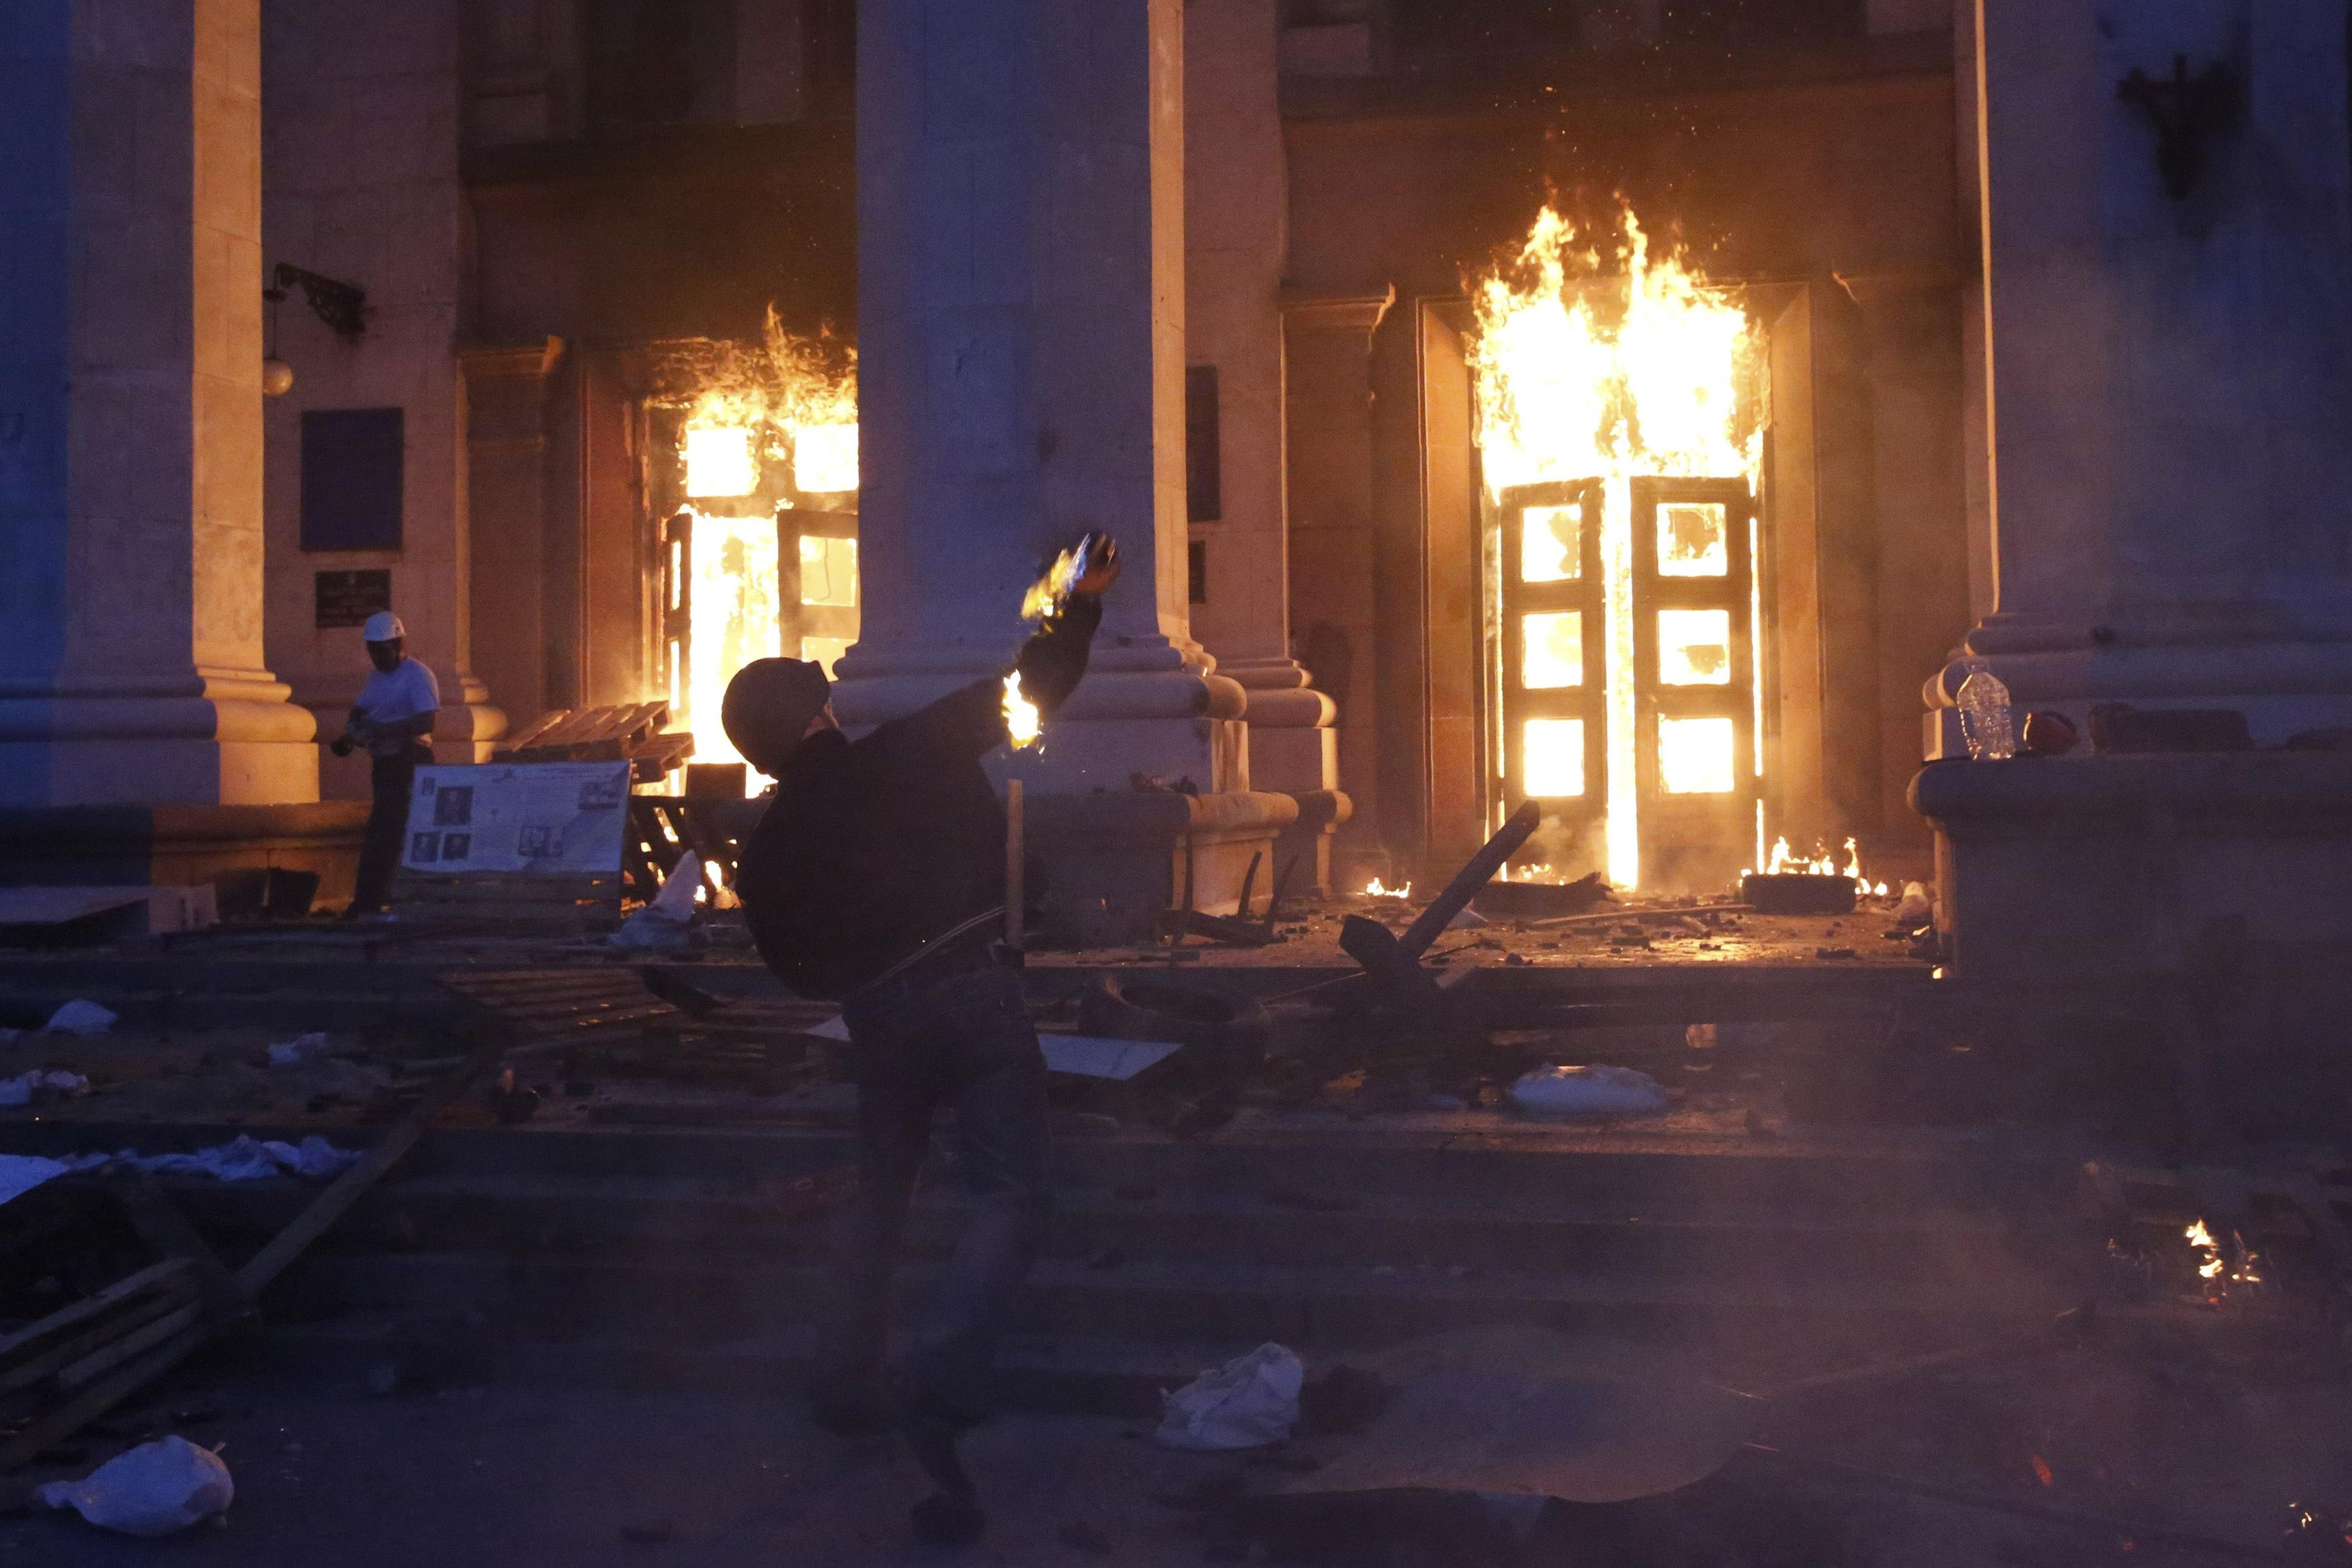 A protester throws a petrol bomb at the trade union building in Odessa, Ukraine May 2, 2014.